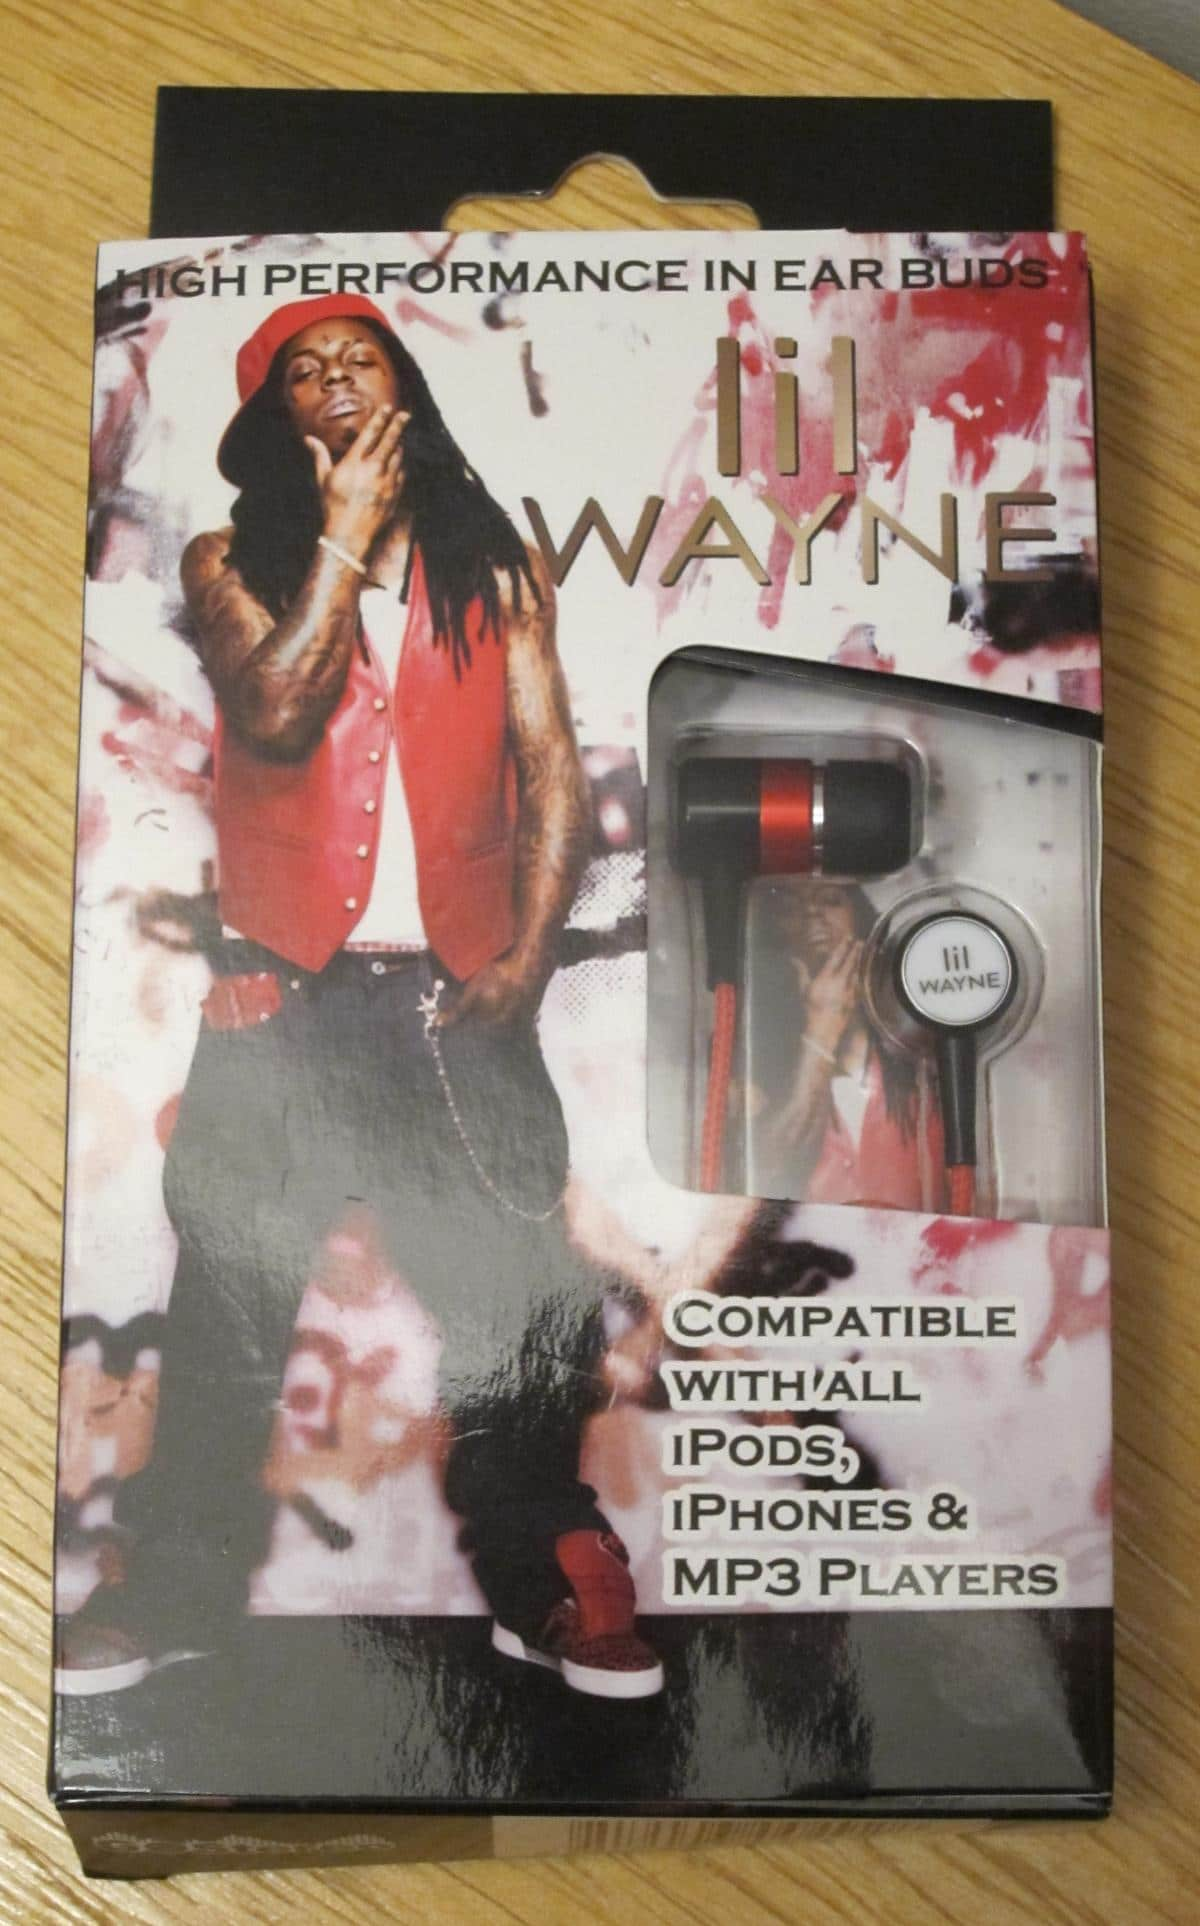 Live Nation Lil Wayne High Performance In Ear Buds